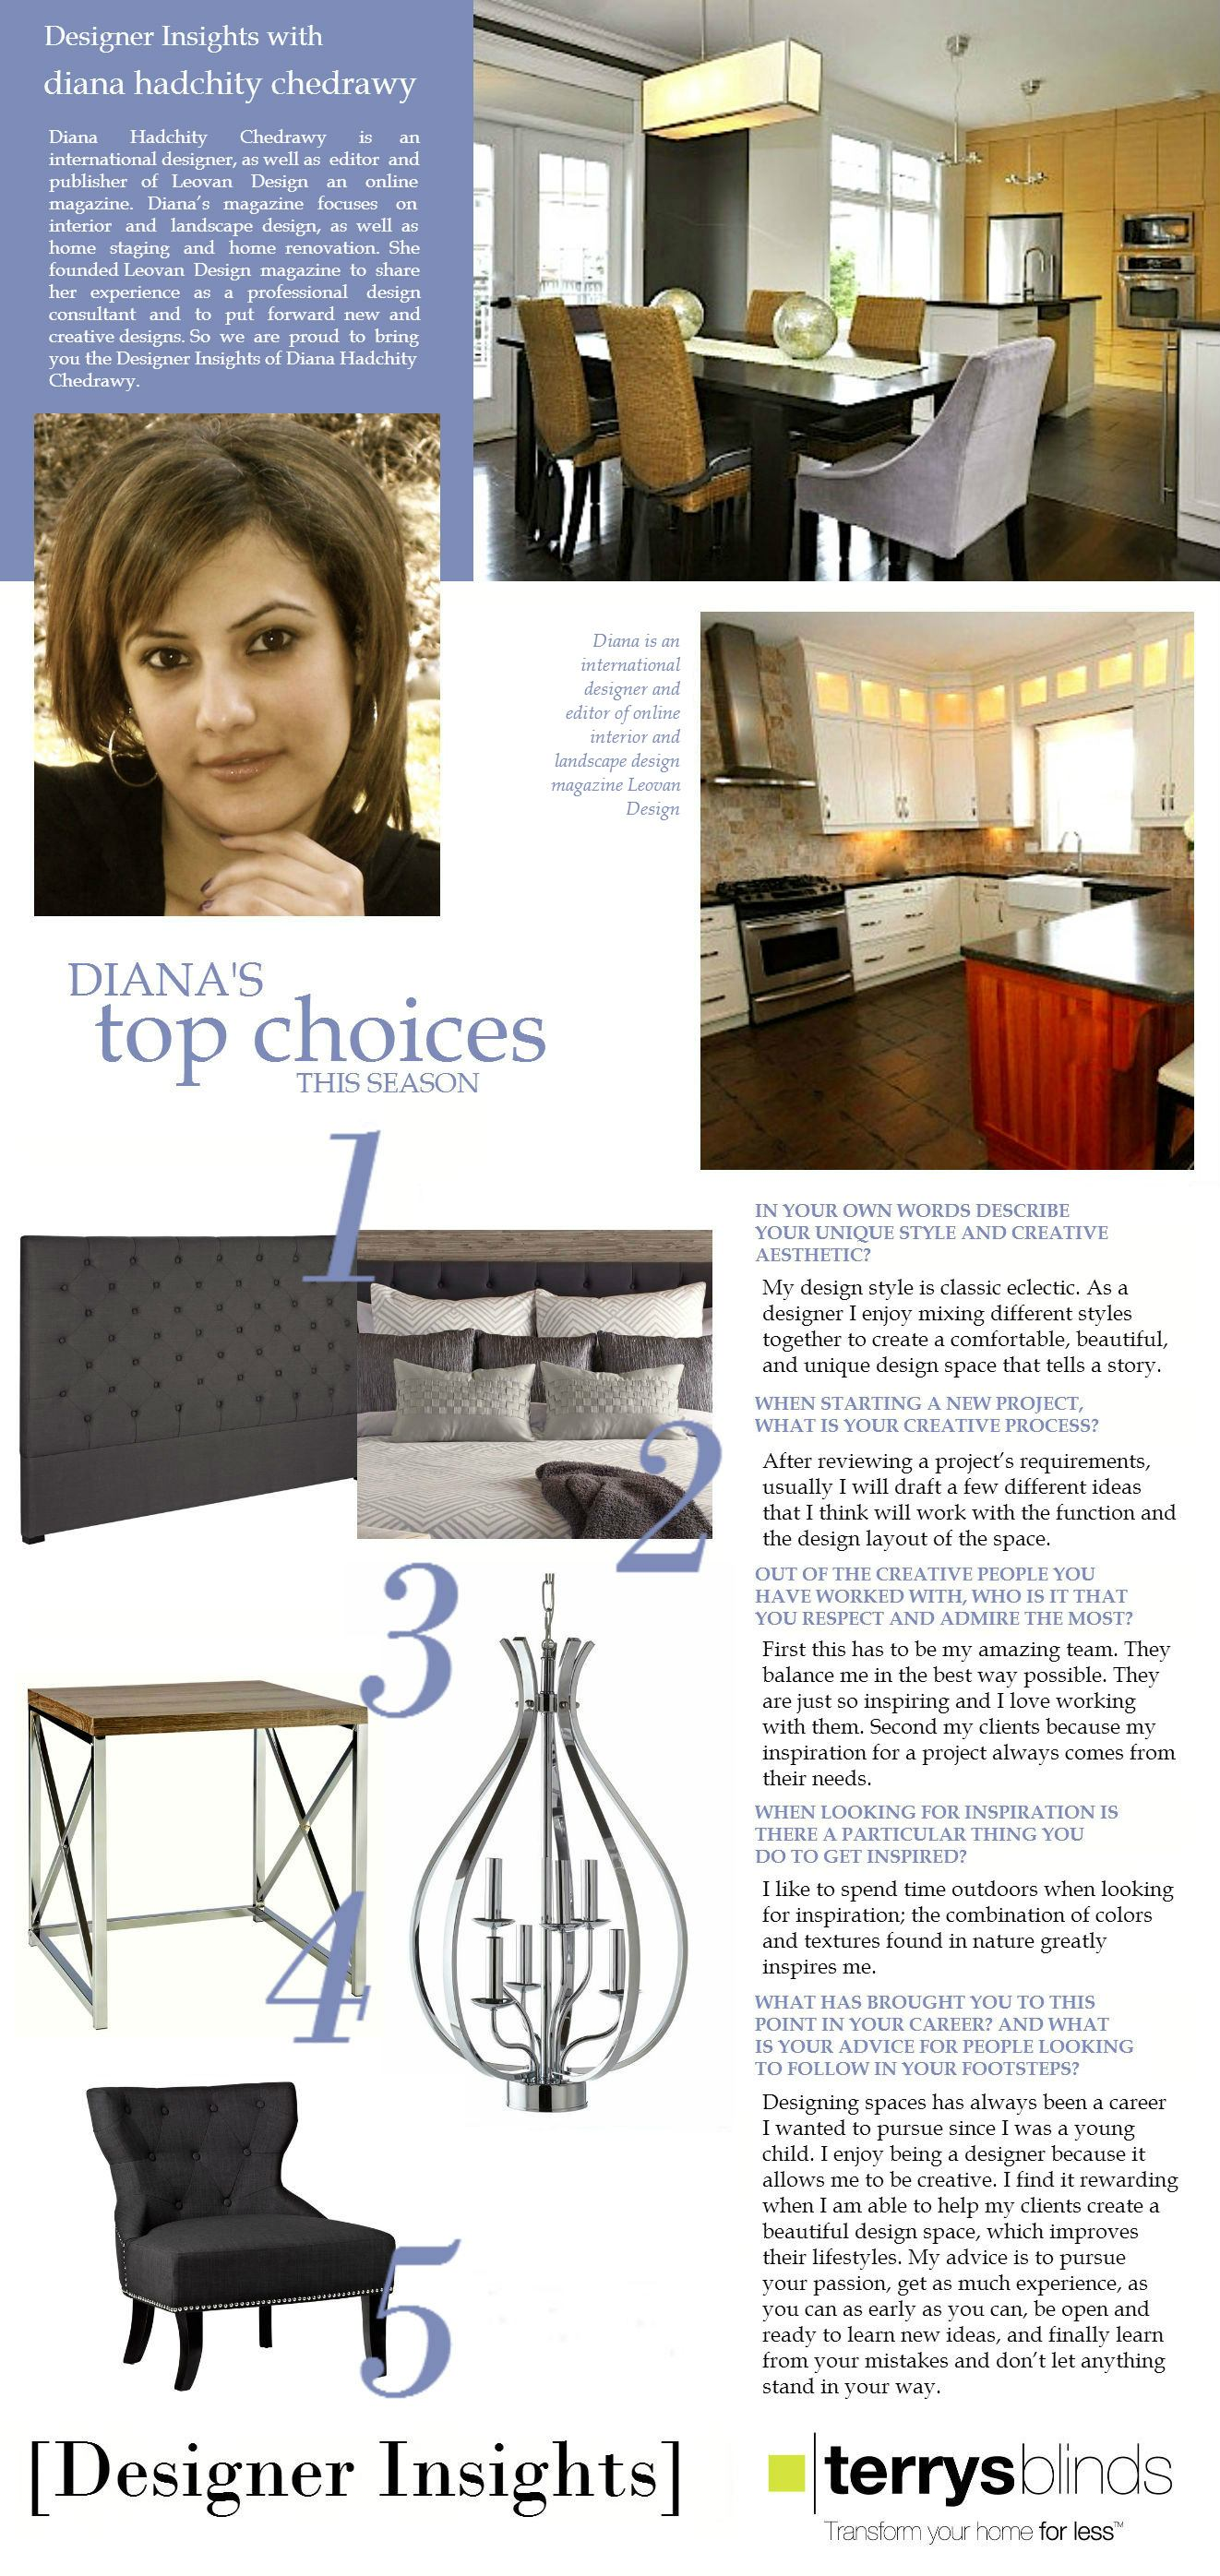 Designer Insights - Diana Hadchity Chedrawy